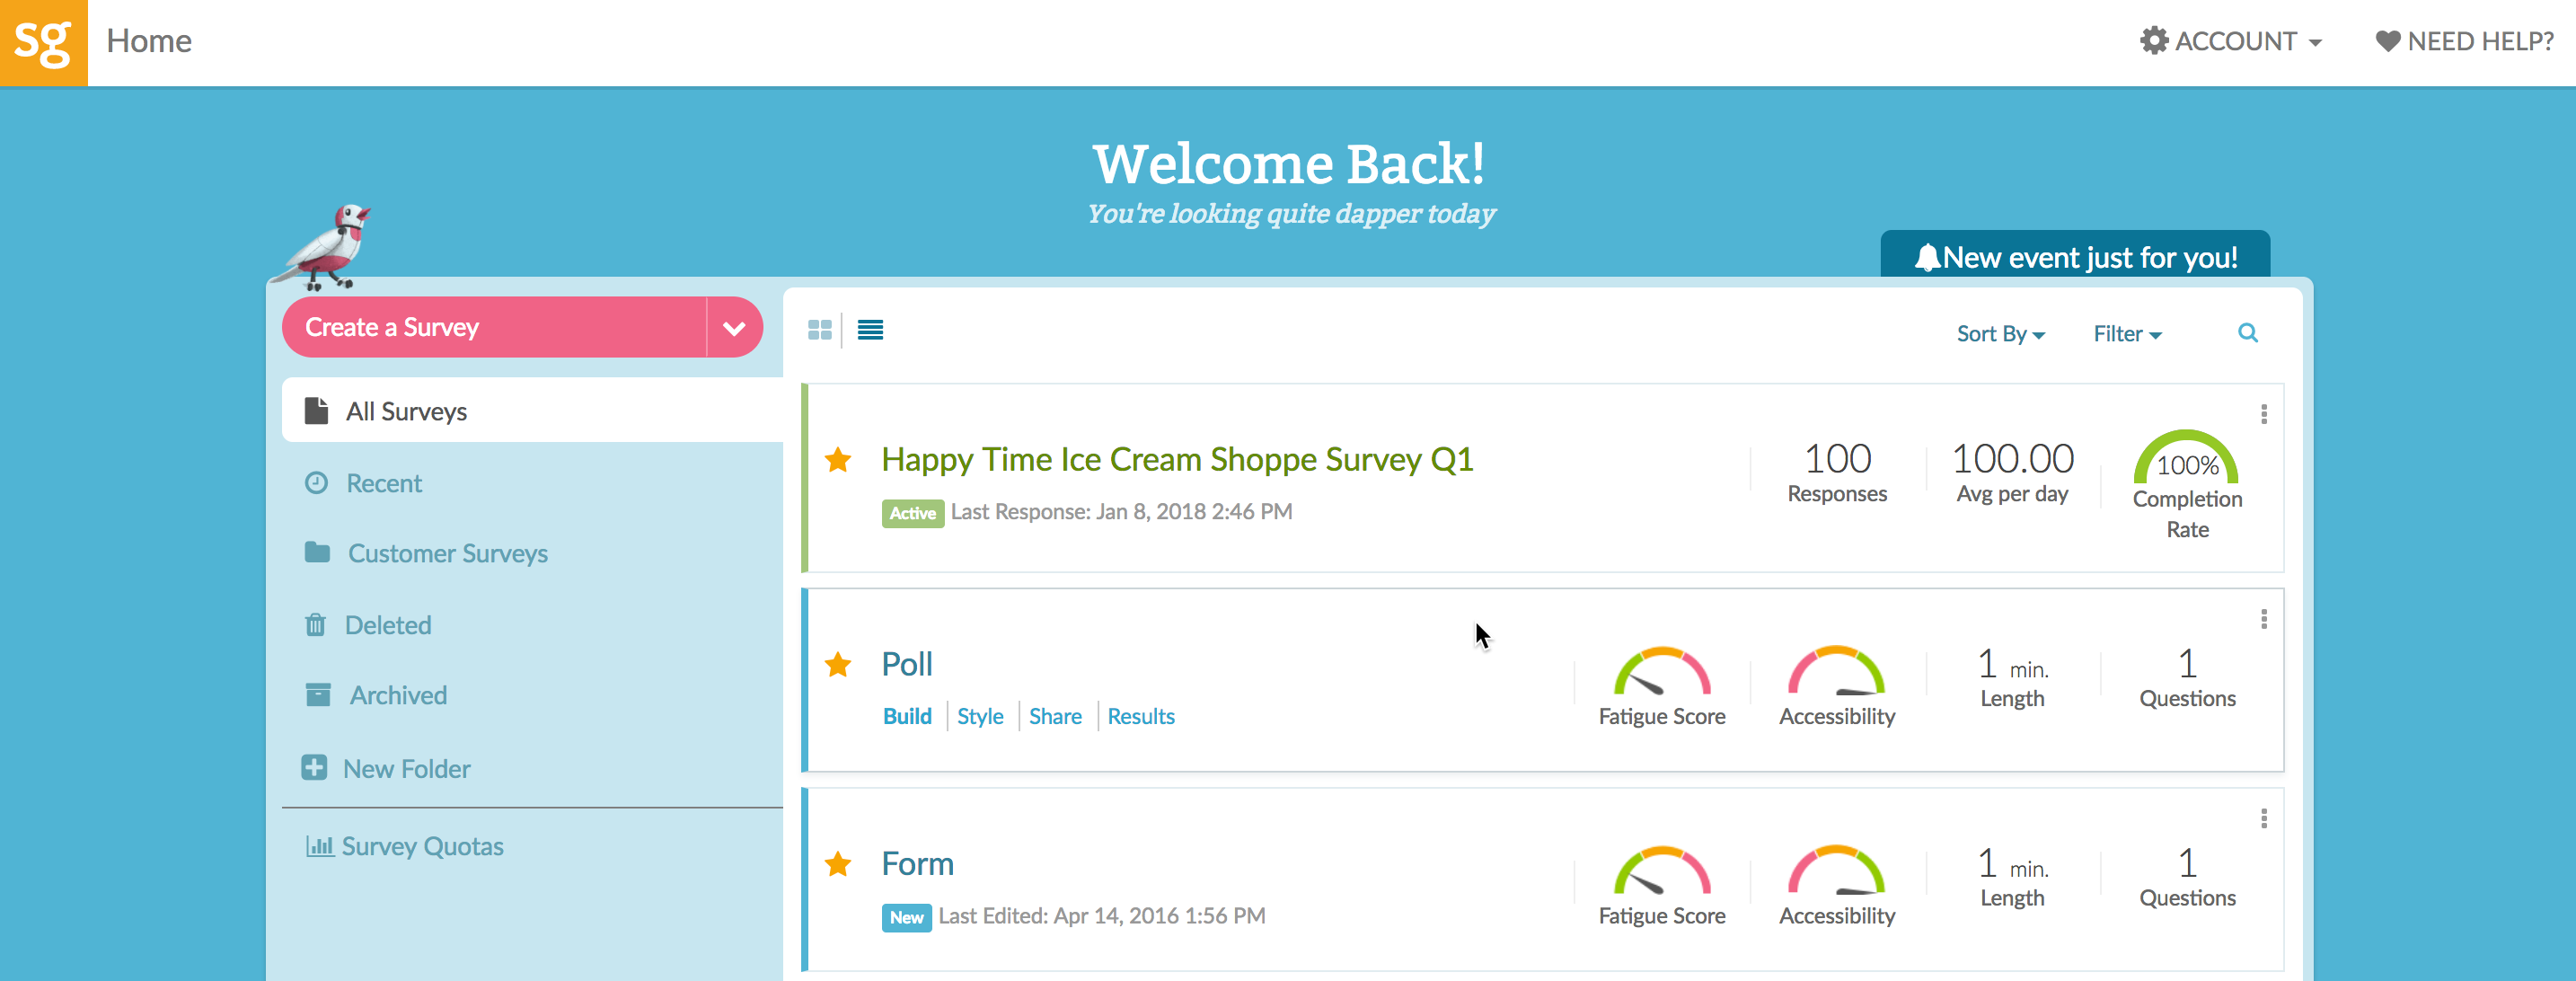 SurveyGizmo Homepage